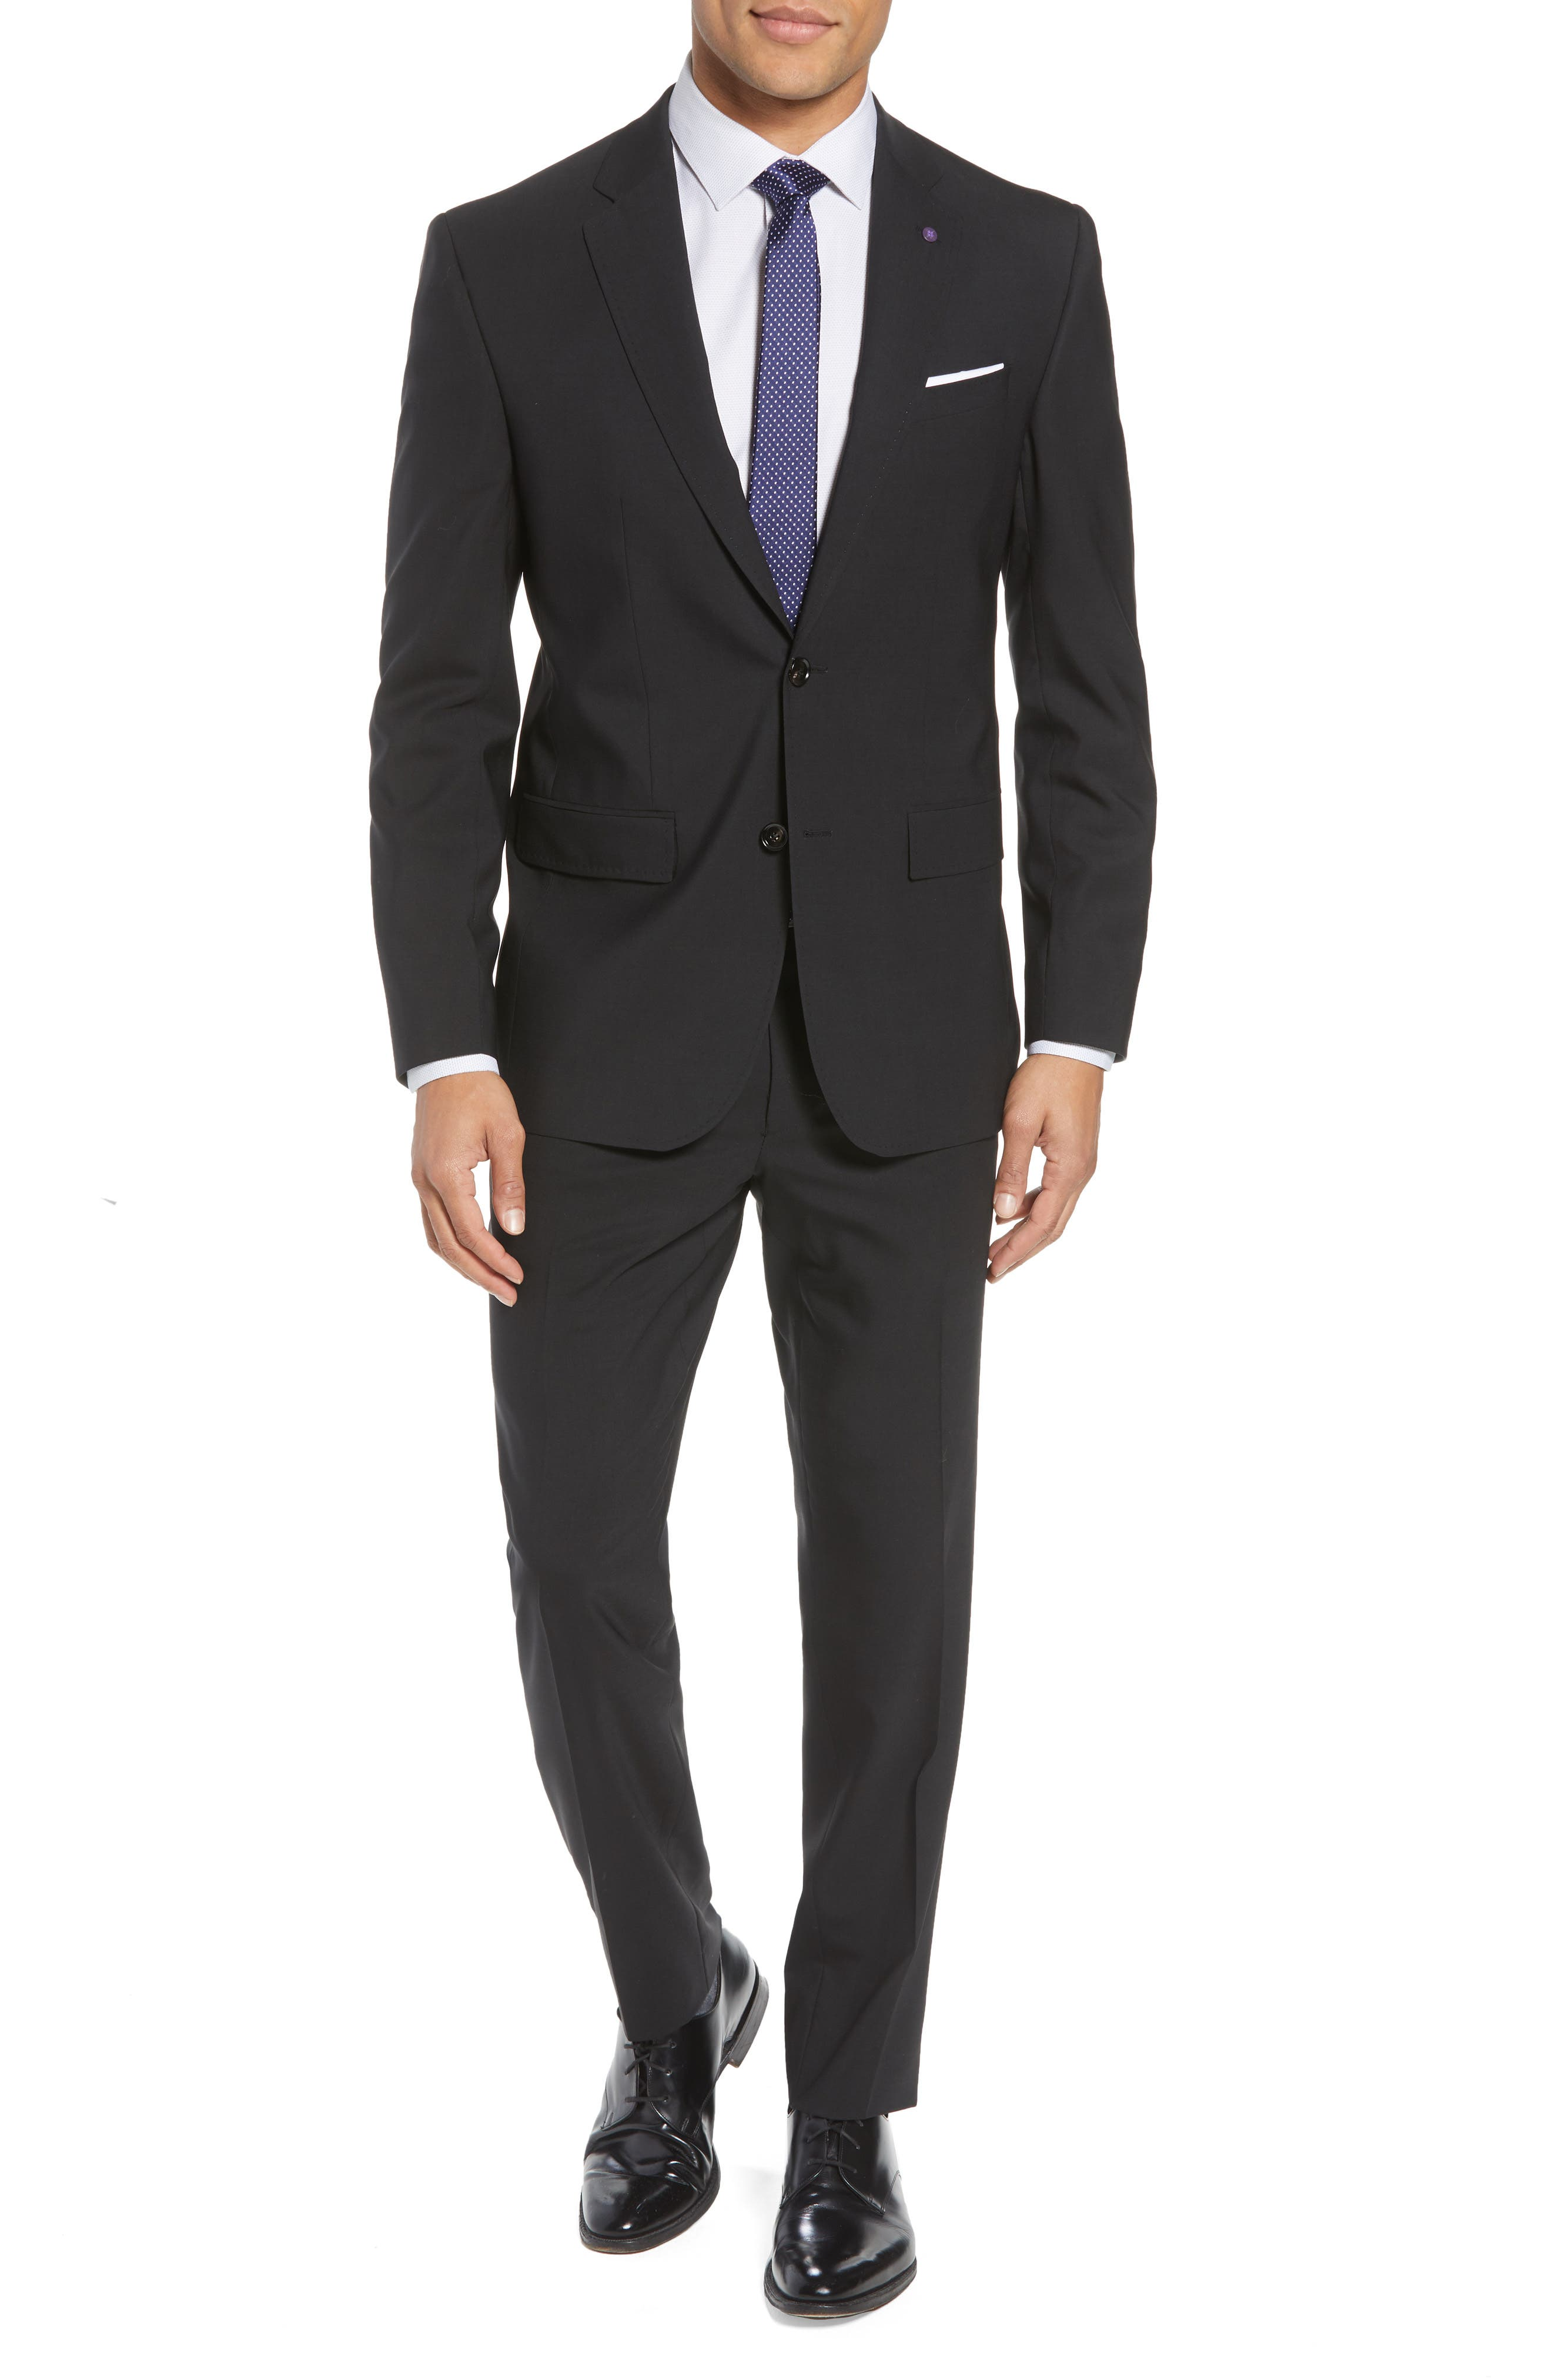 TED BAKER LONDON, Jay Trim Fit Solid Wool Suit, Alternate thumbnail 7, color, BLACK